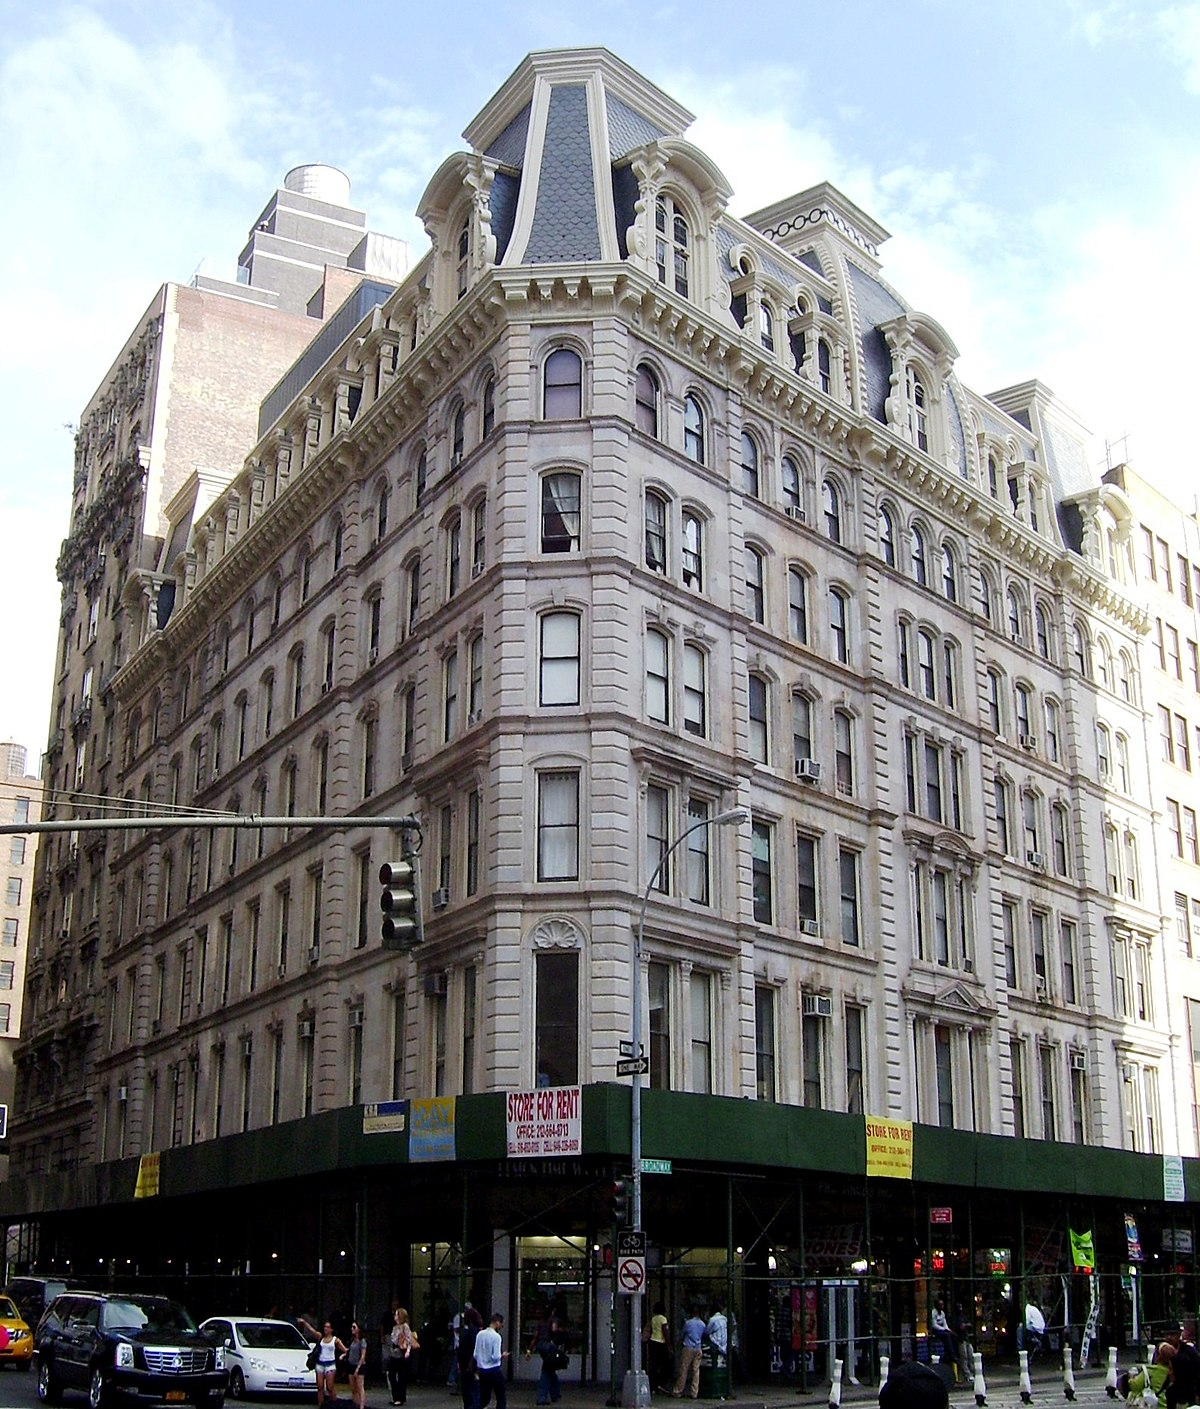 Grand hotel new york city wikipedia for New york hotels